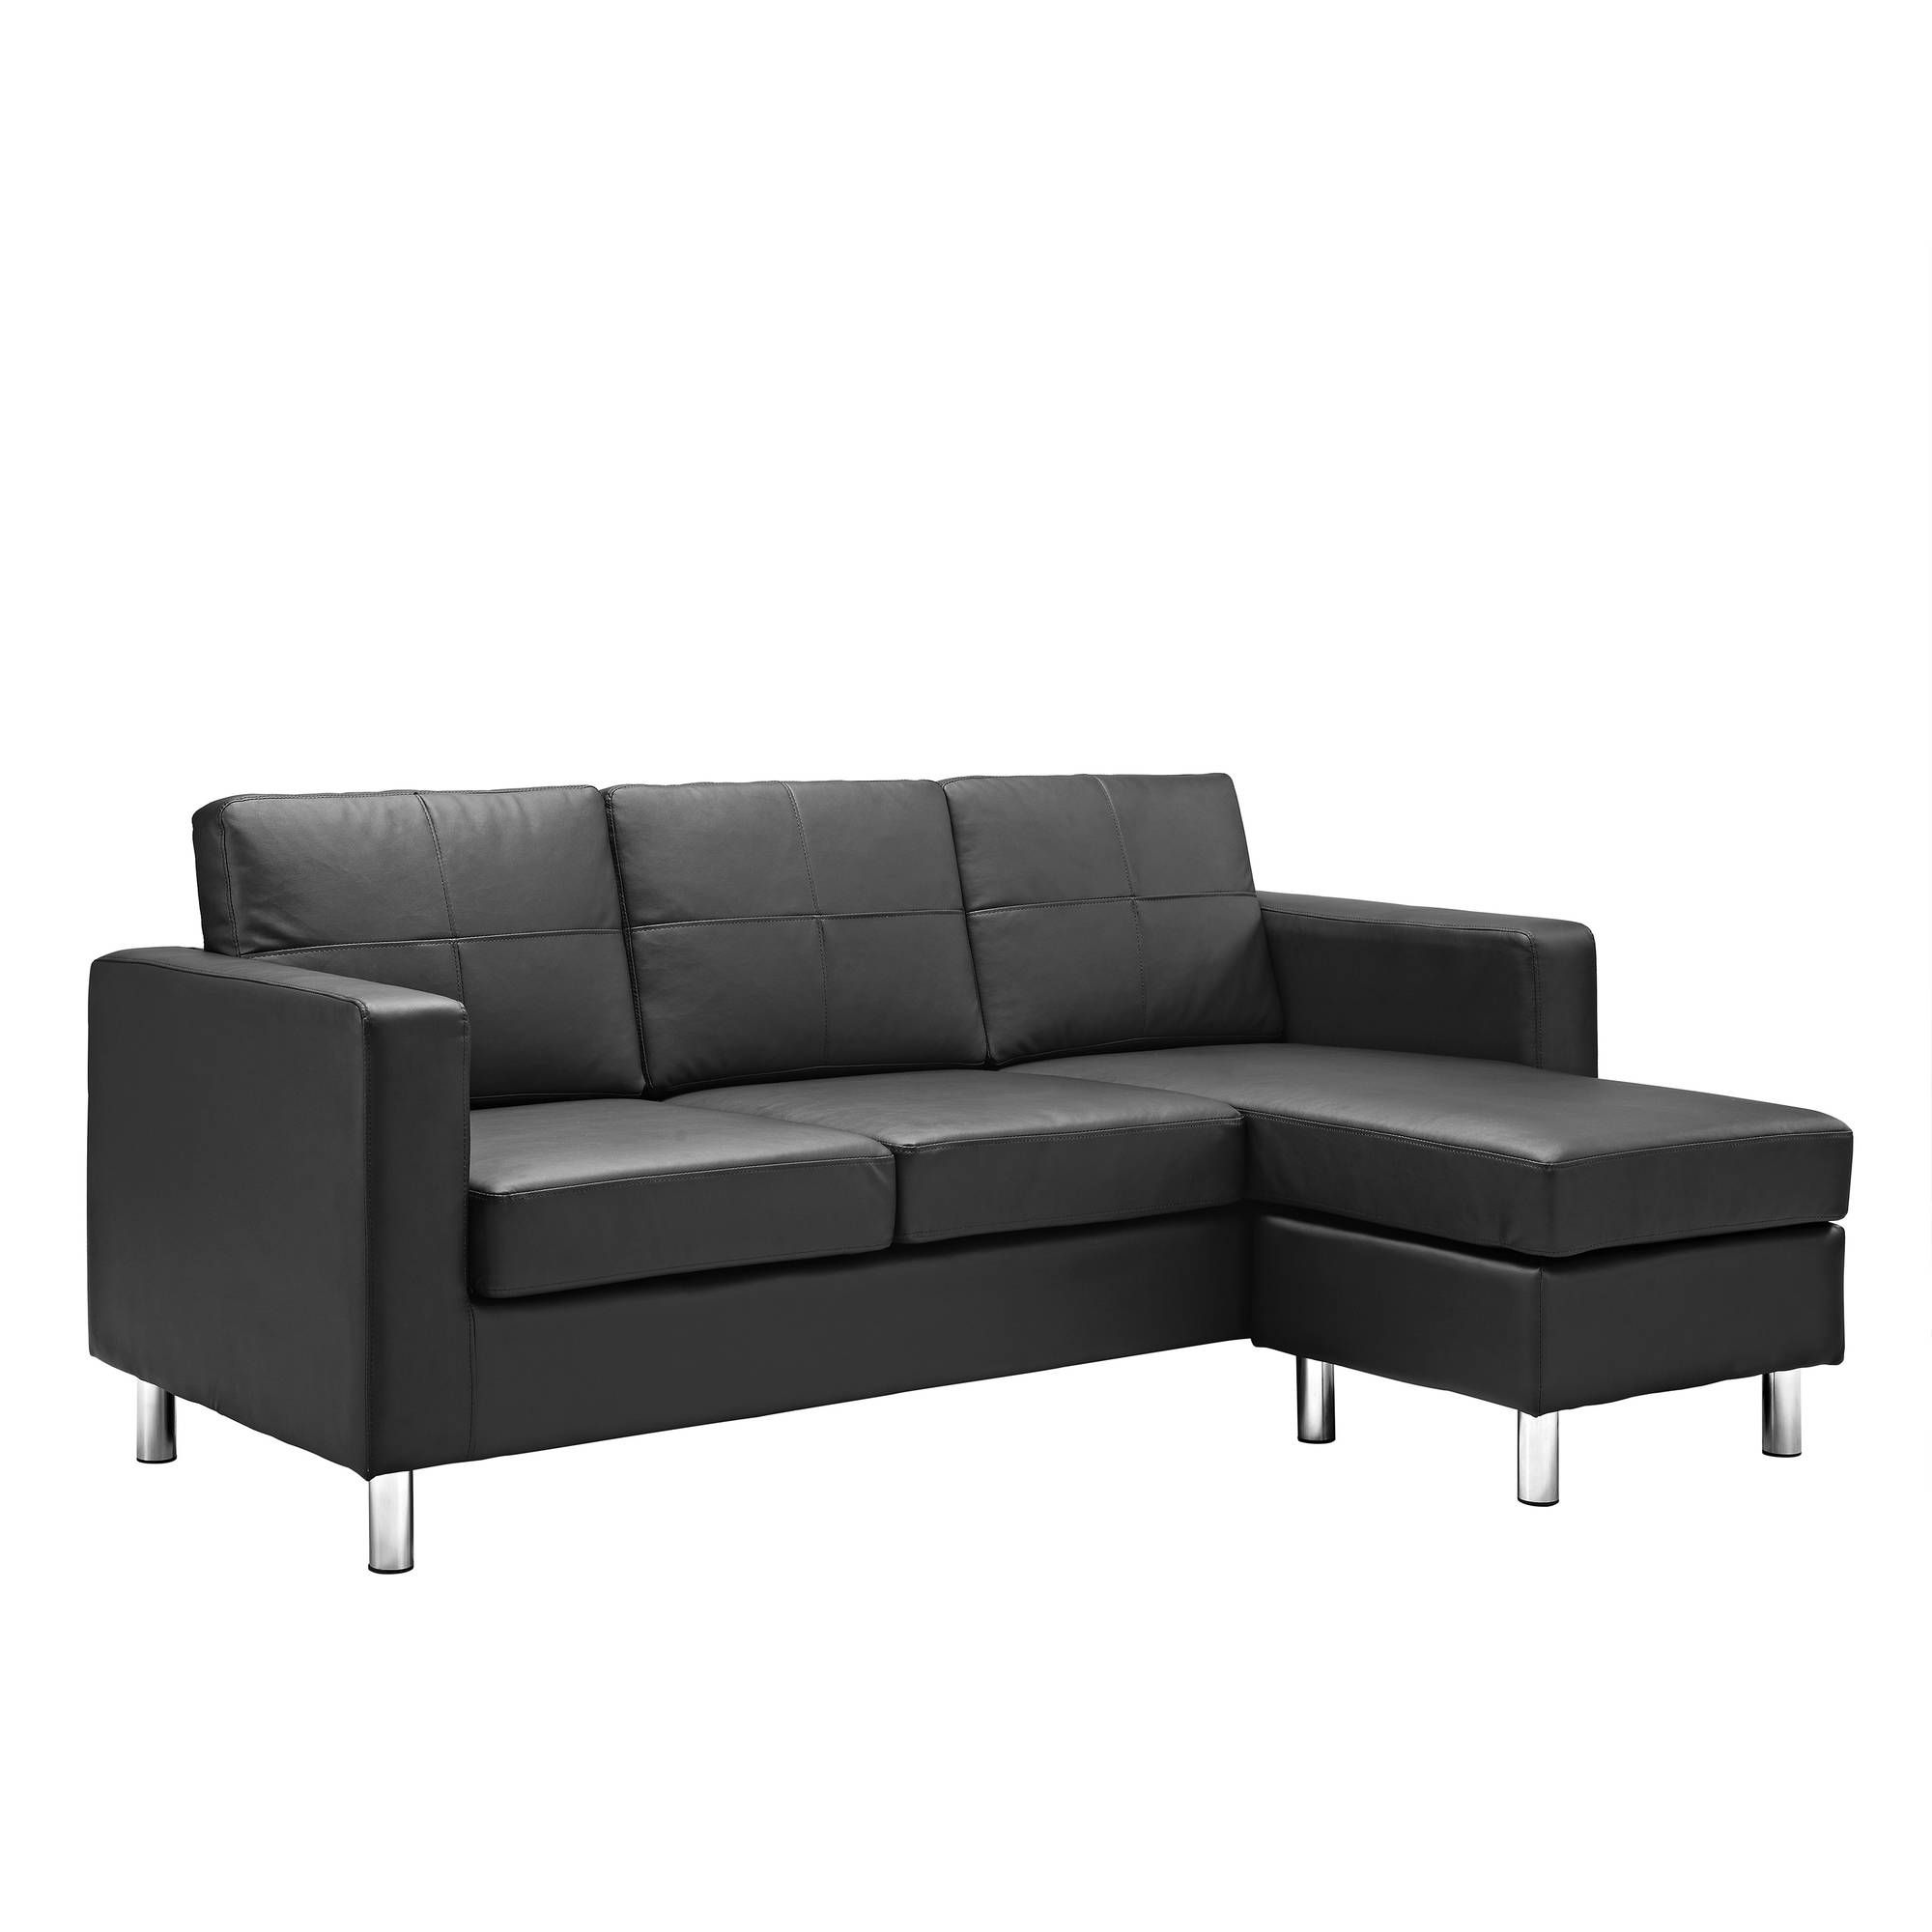 sofa couch products clearance file br pm faustine seater lush